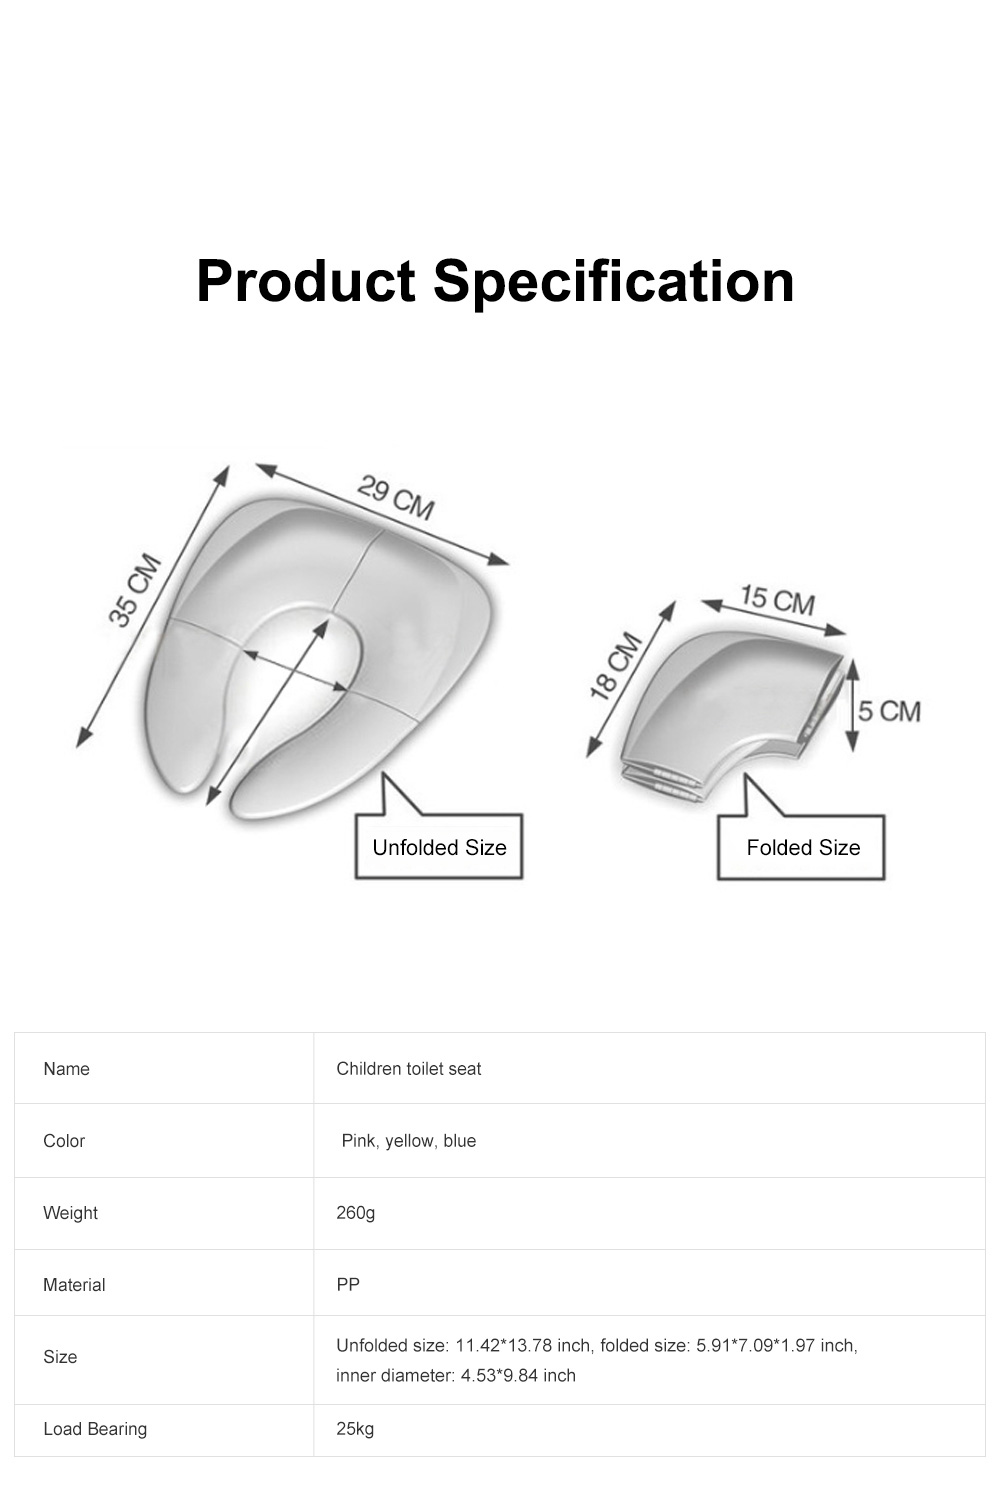 Portable Foldable Outdoors Traveling Children Safety Toilet Seat with Anti-skid Pads Buckles Kids Toilet Cushion 6